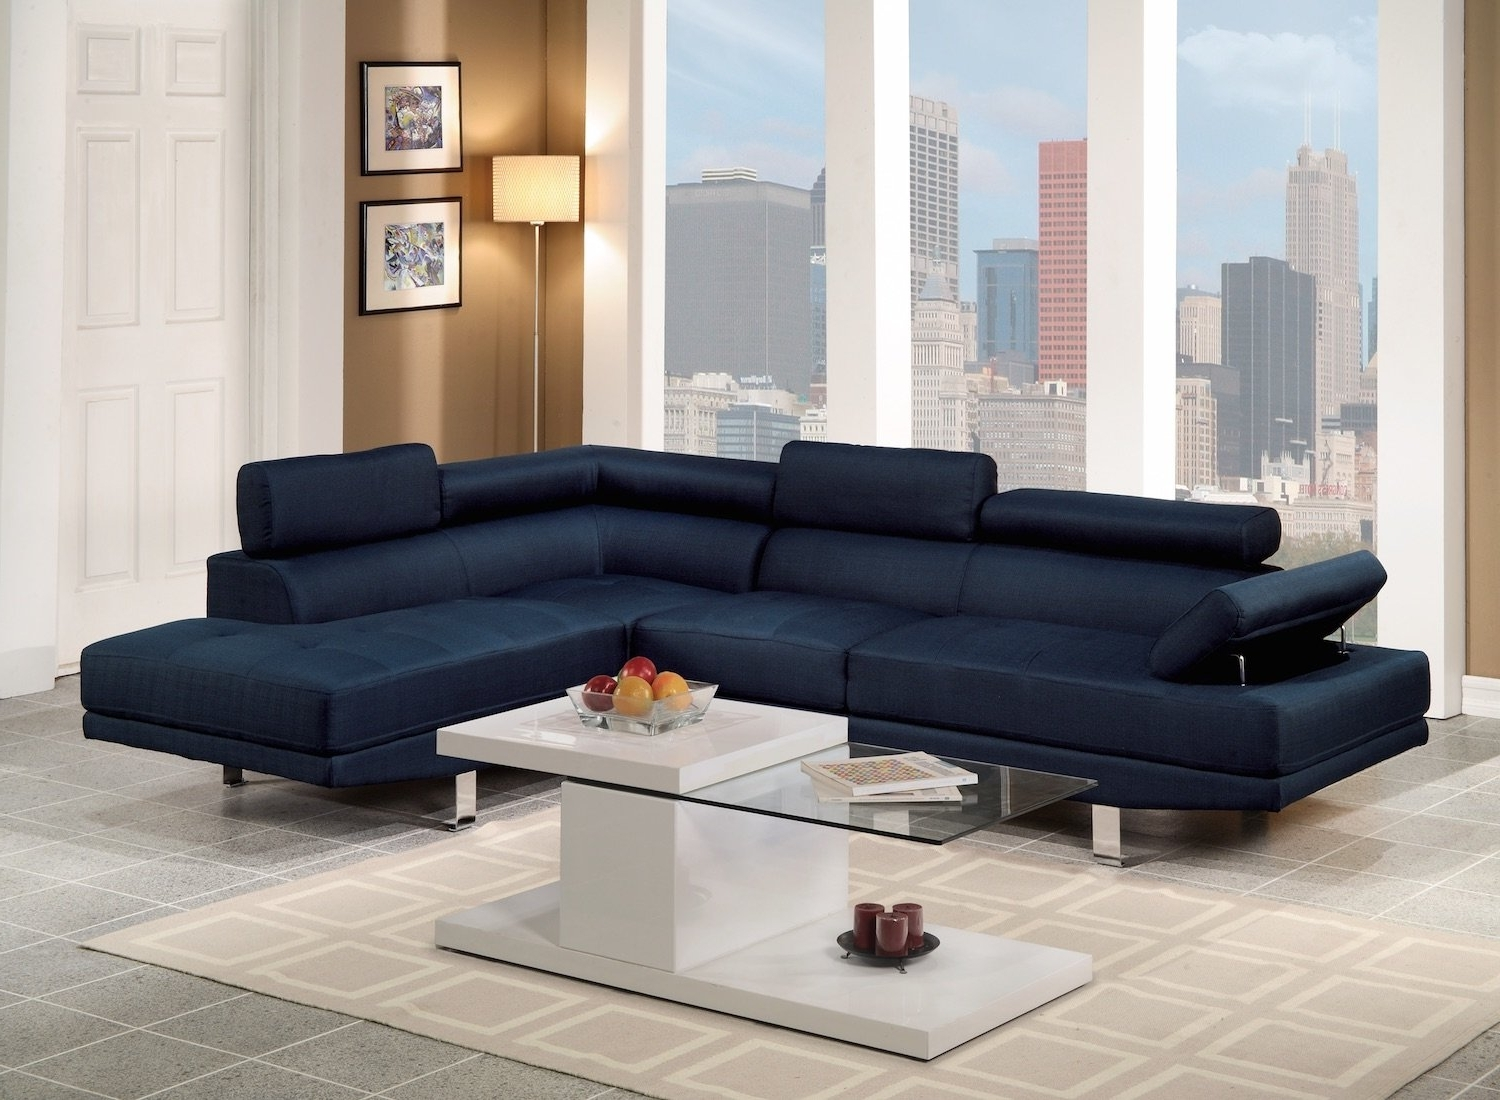 Blue Sectional Sofas Within Fashionable Navy Blue Sectional Sofa (View 7 of 15)